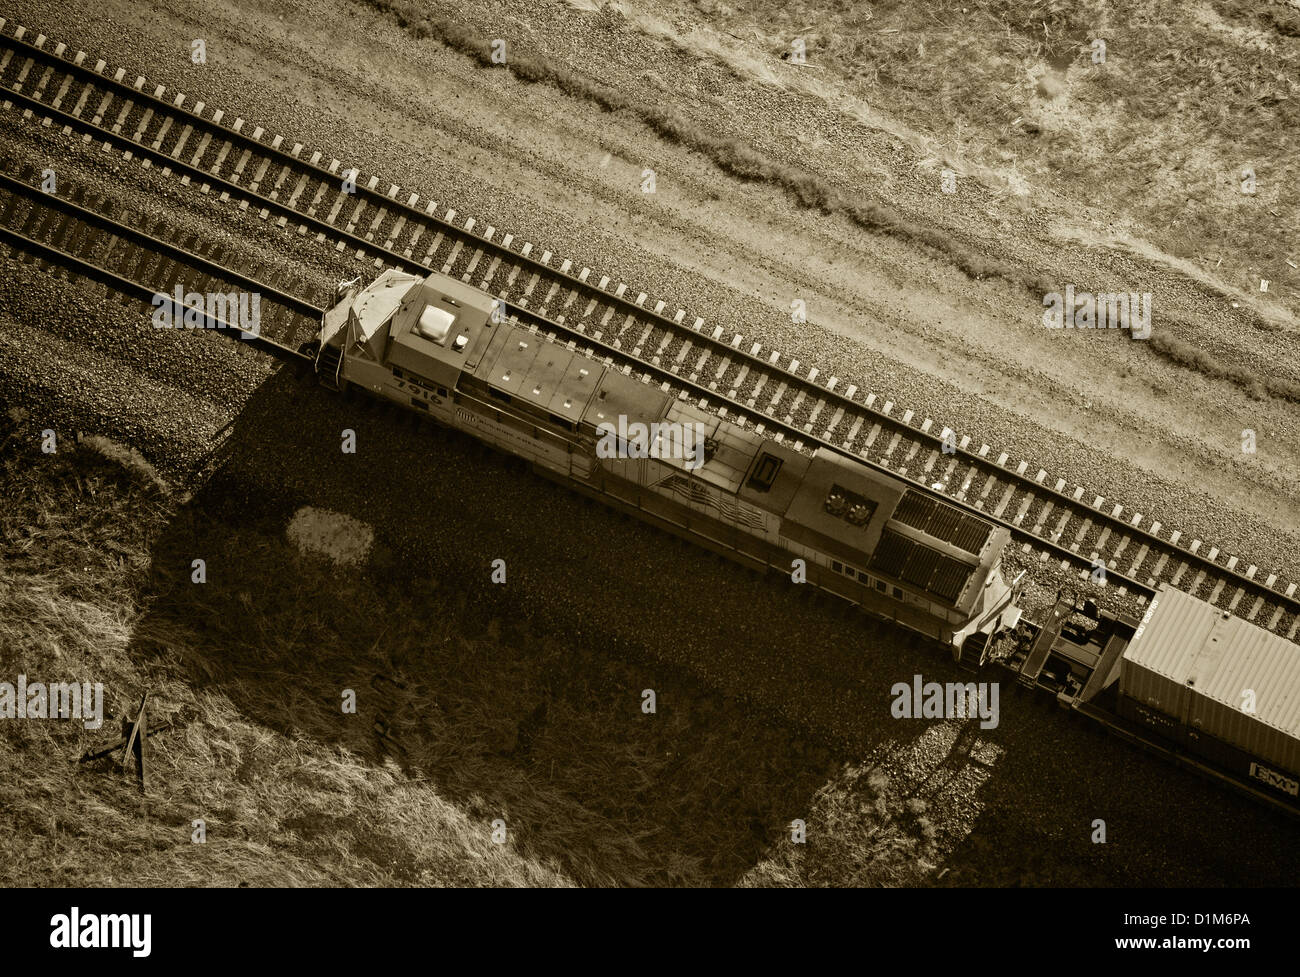 aerial photograph diesel Union Pacific locomotive southern Wyoming - Stock Image